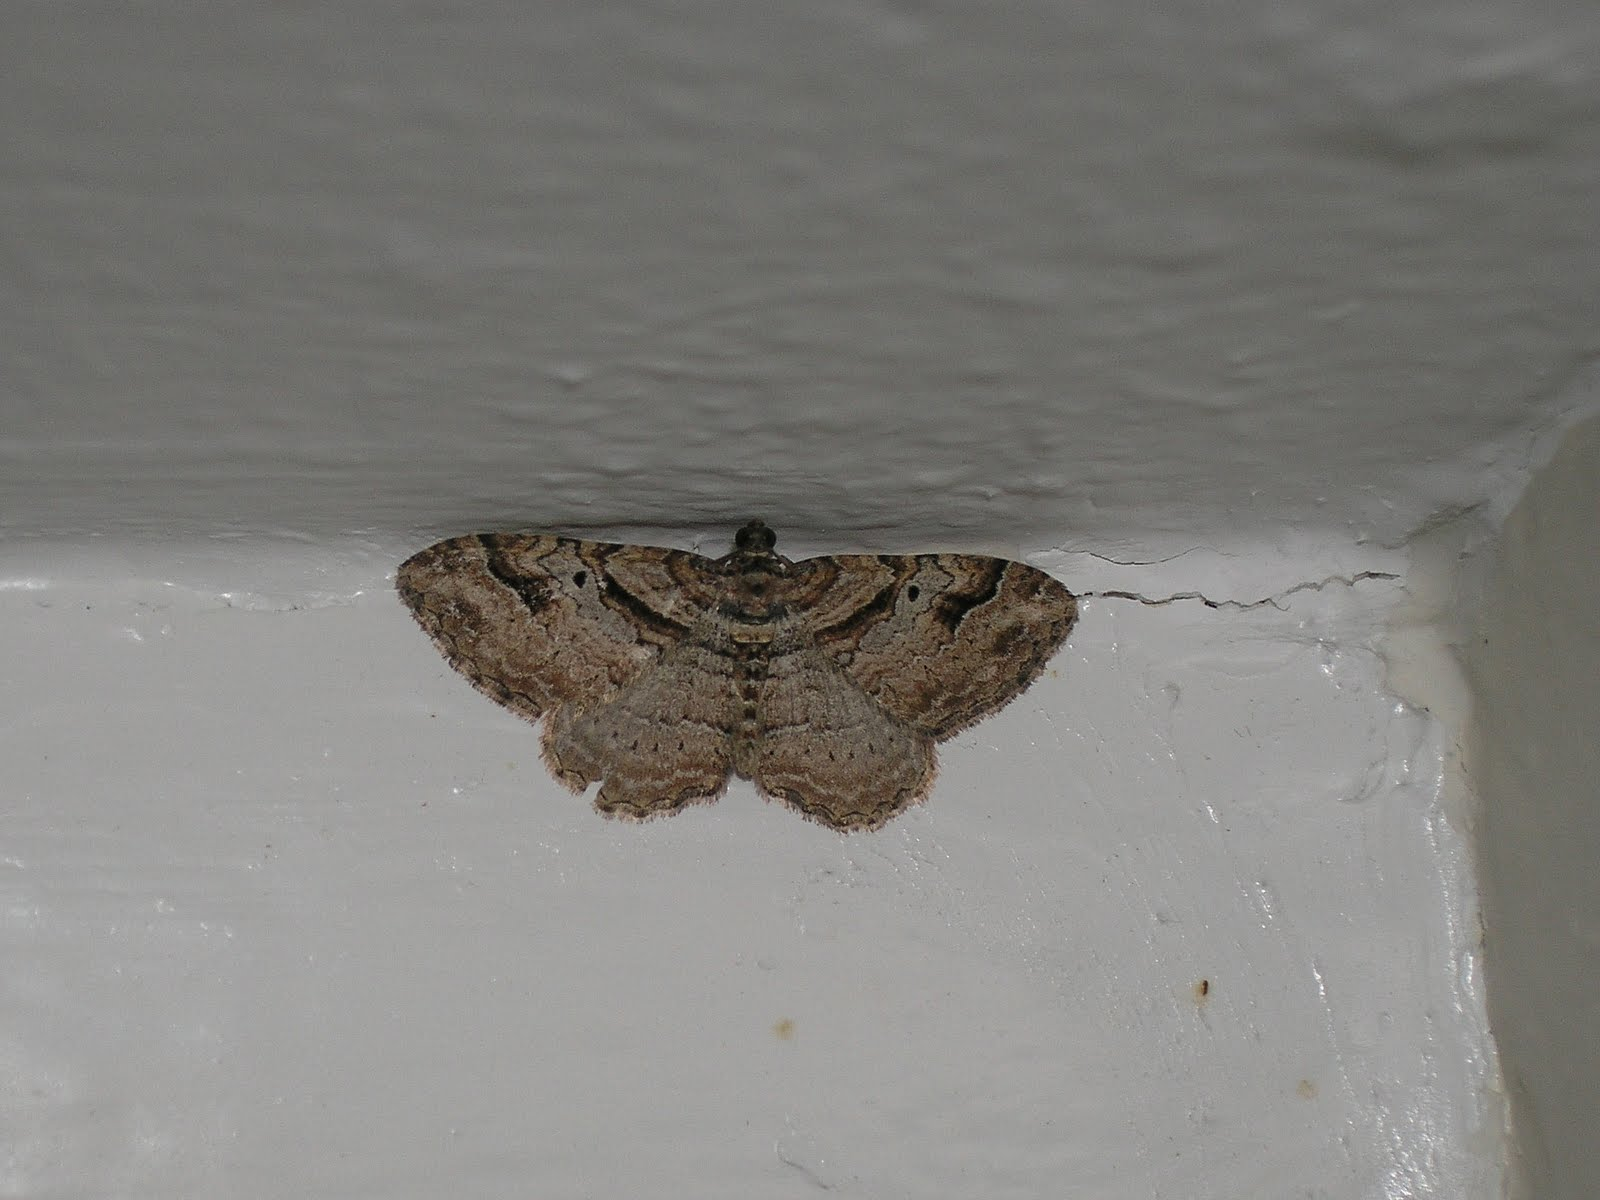 Red 39 s Good Vs Evil Cow Barn More Moths Muths in the Bathroom. Moths In Bathroom